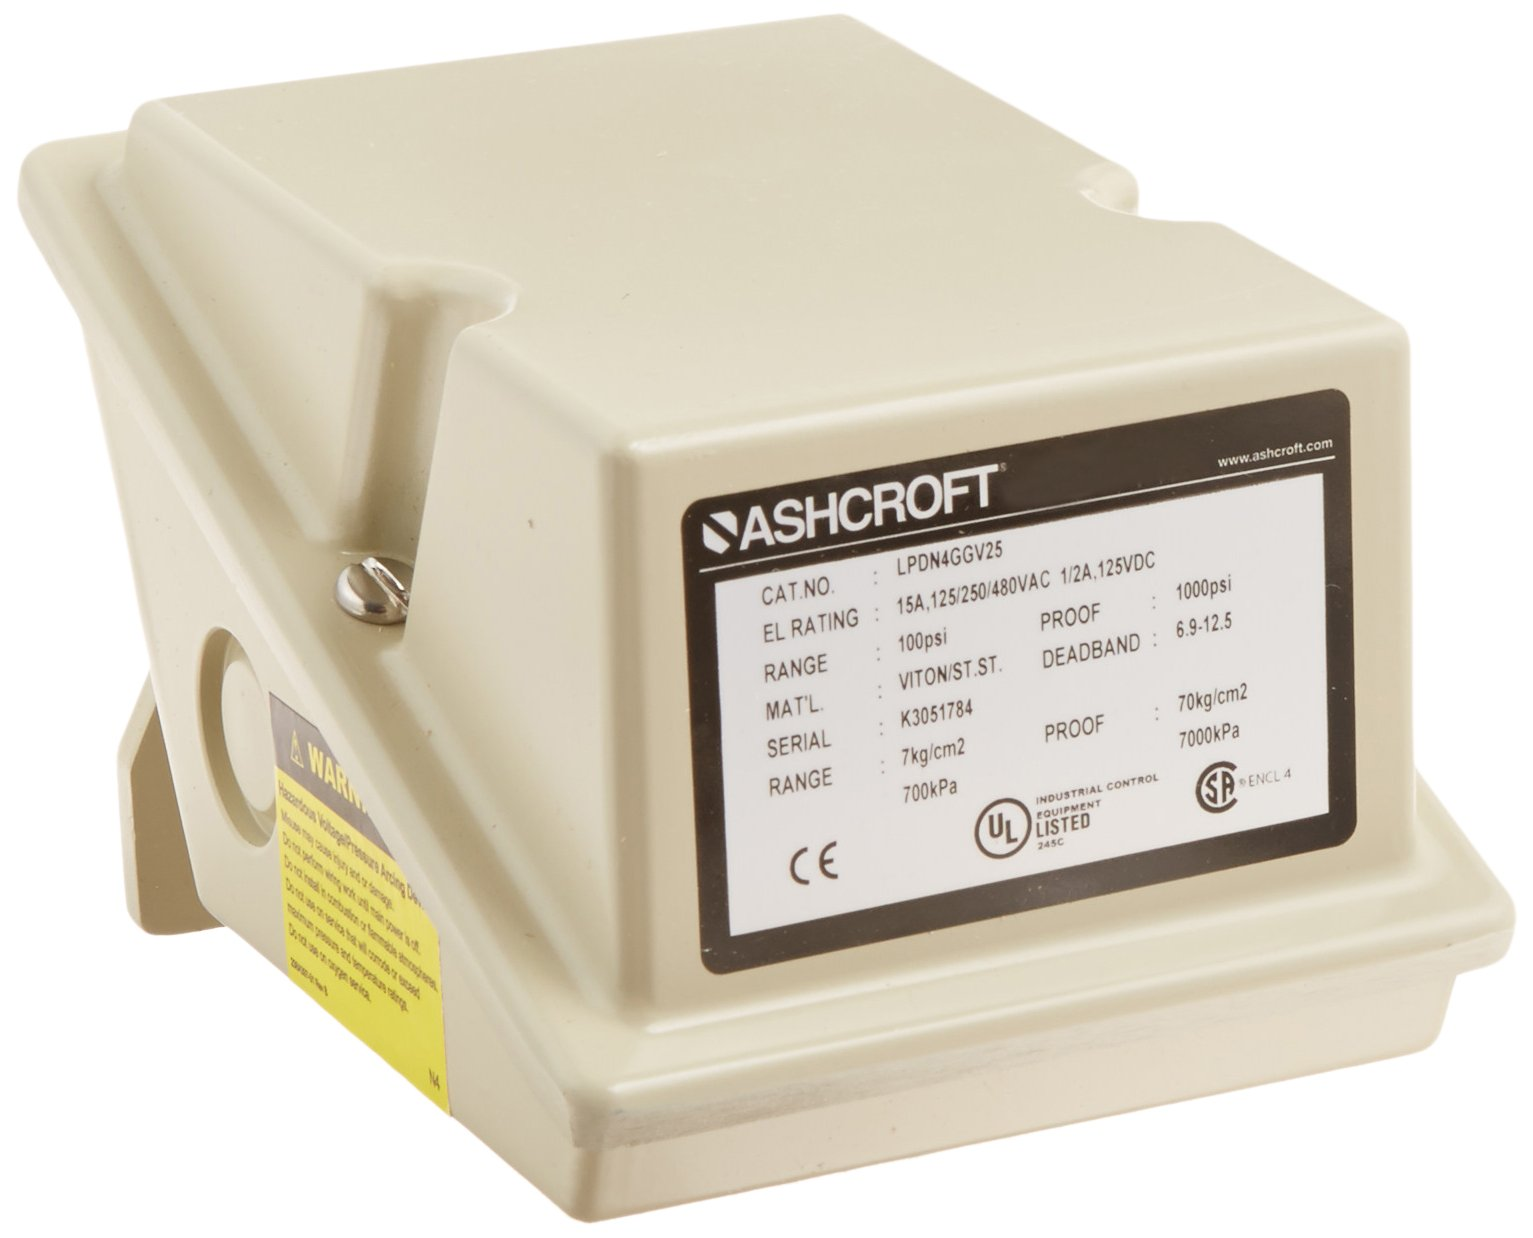 Ashcroft Series L Epoxy Coated Die Cast Aluminum Industrial Pressure Control Switch with SPDT Contact Form, Adjustable Deadband, 1/4'' NPT Female Connection, Viton Actuator Seal, 10/100 psi Range